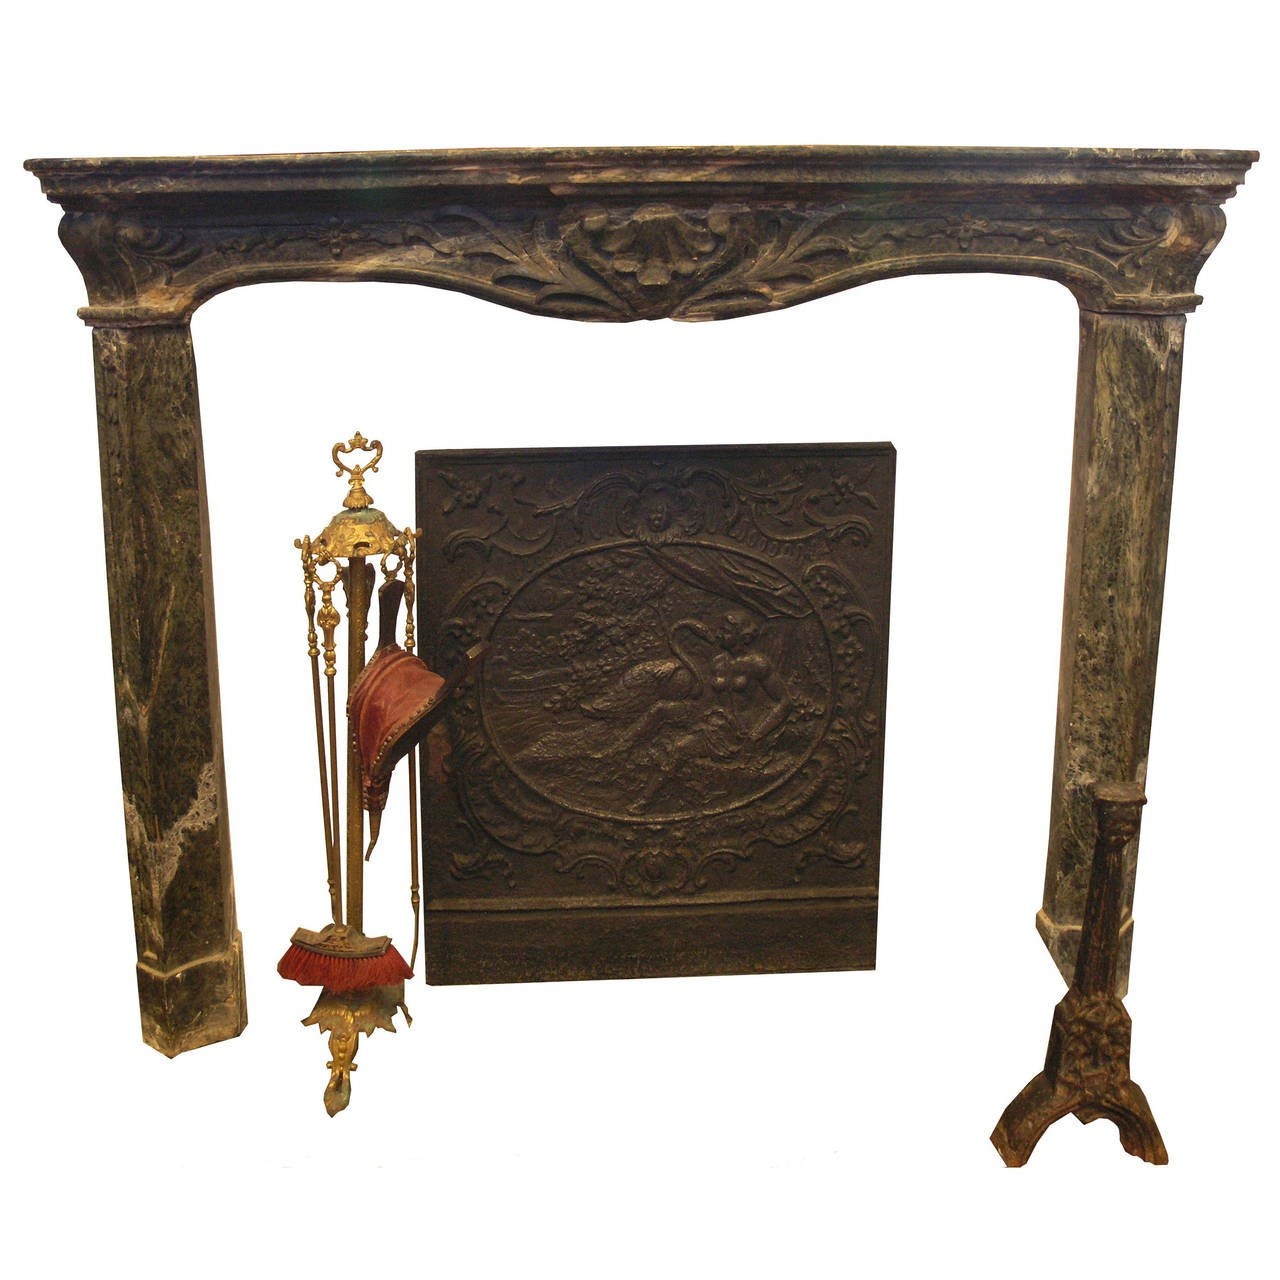 Antique verde alpi marble fireplace mantel for sale at 1stdibs for Marble mantels for sale